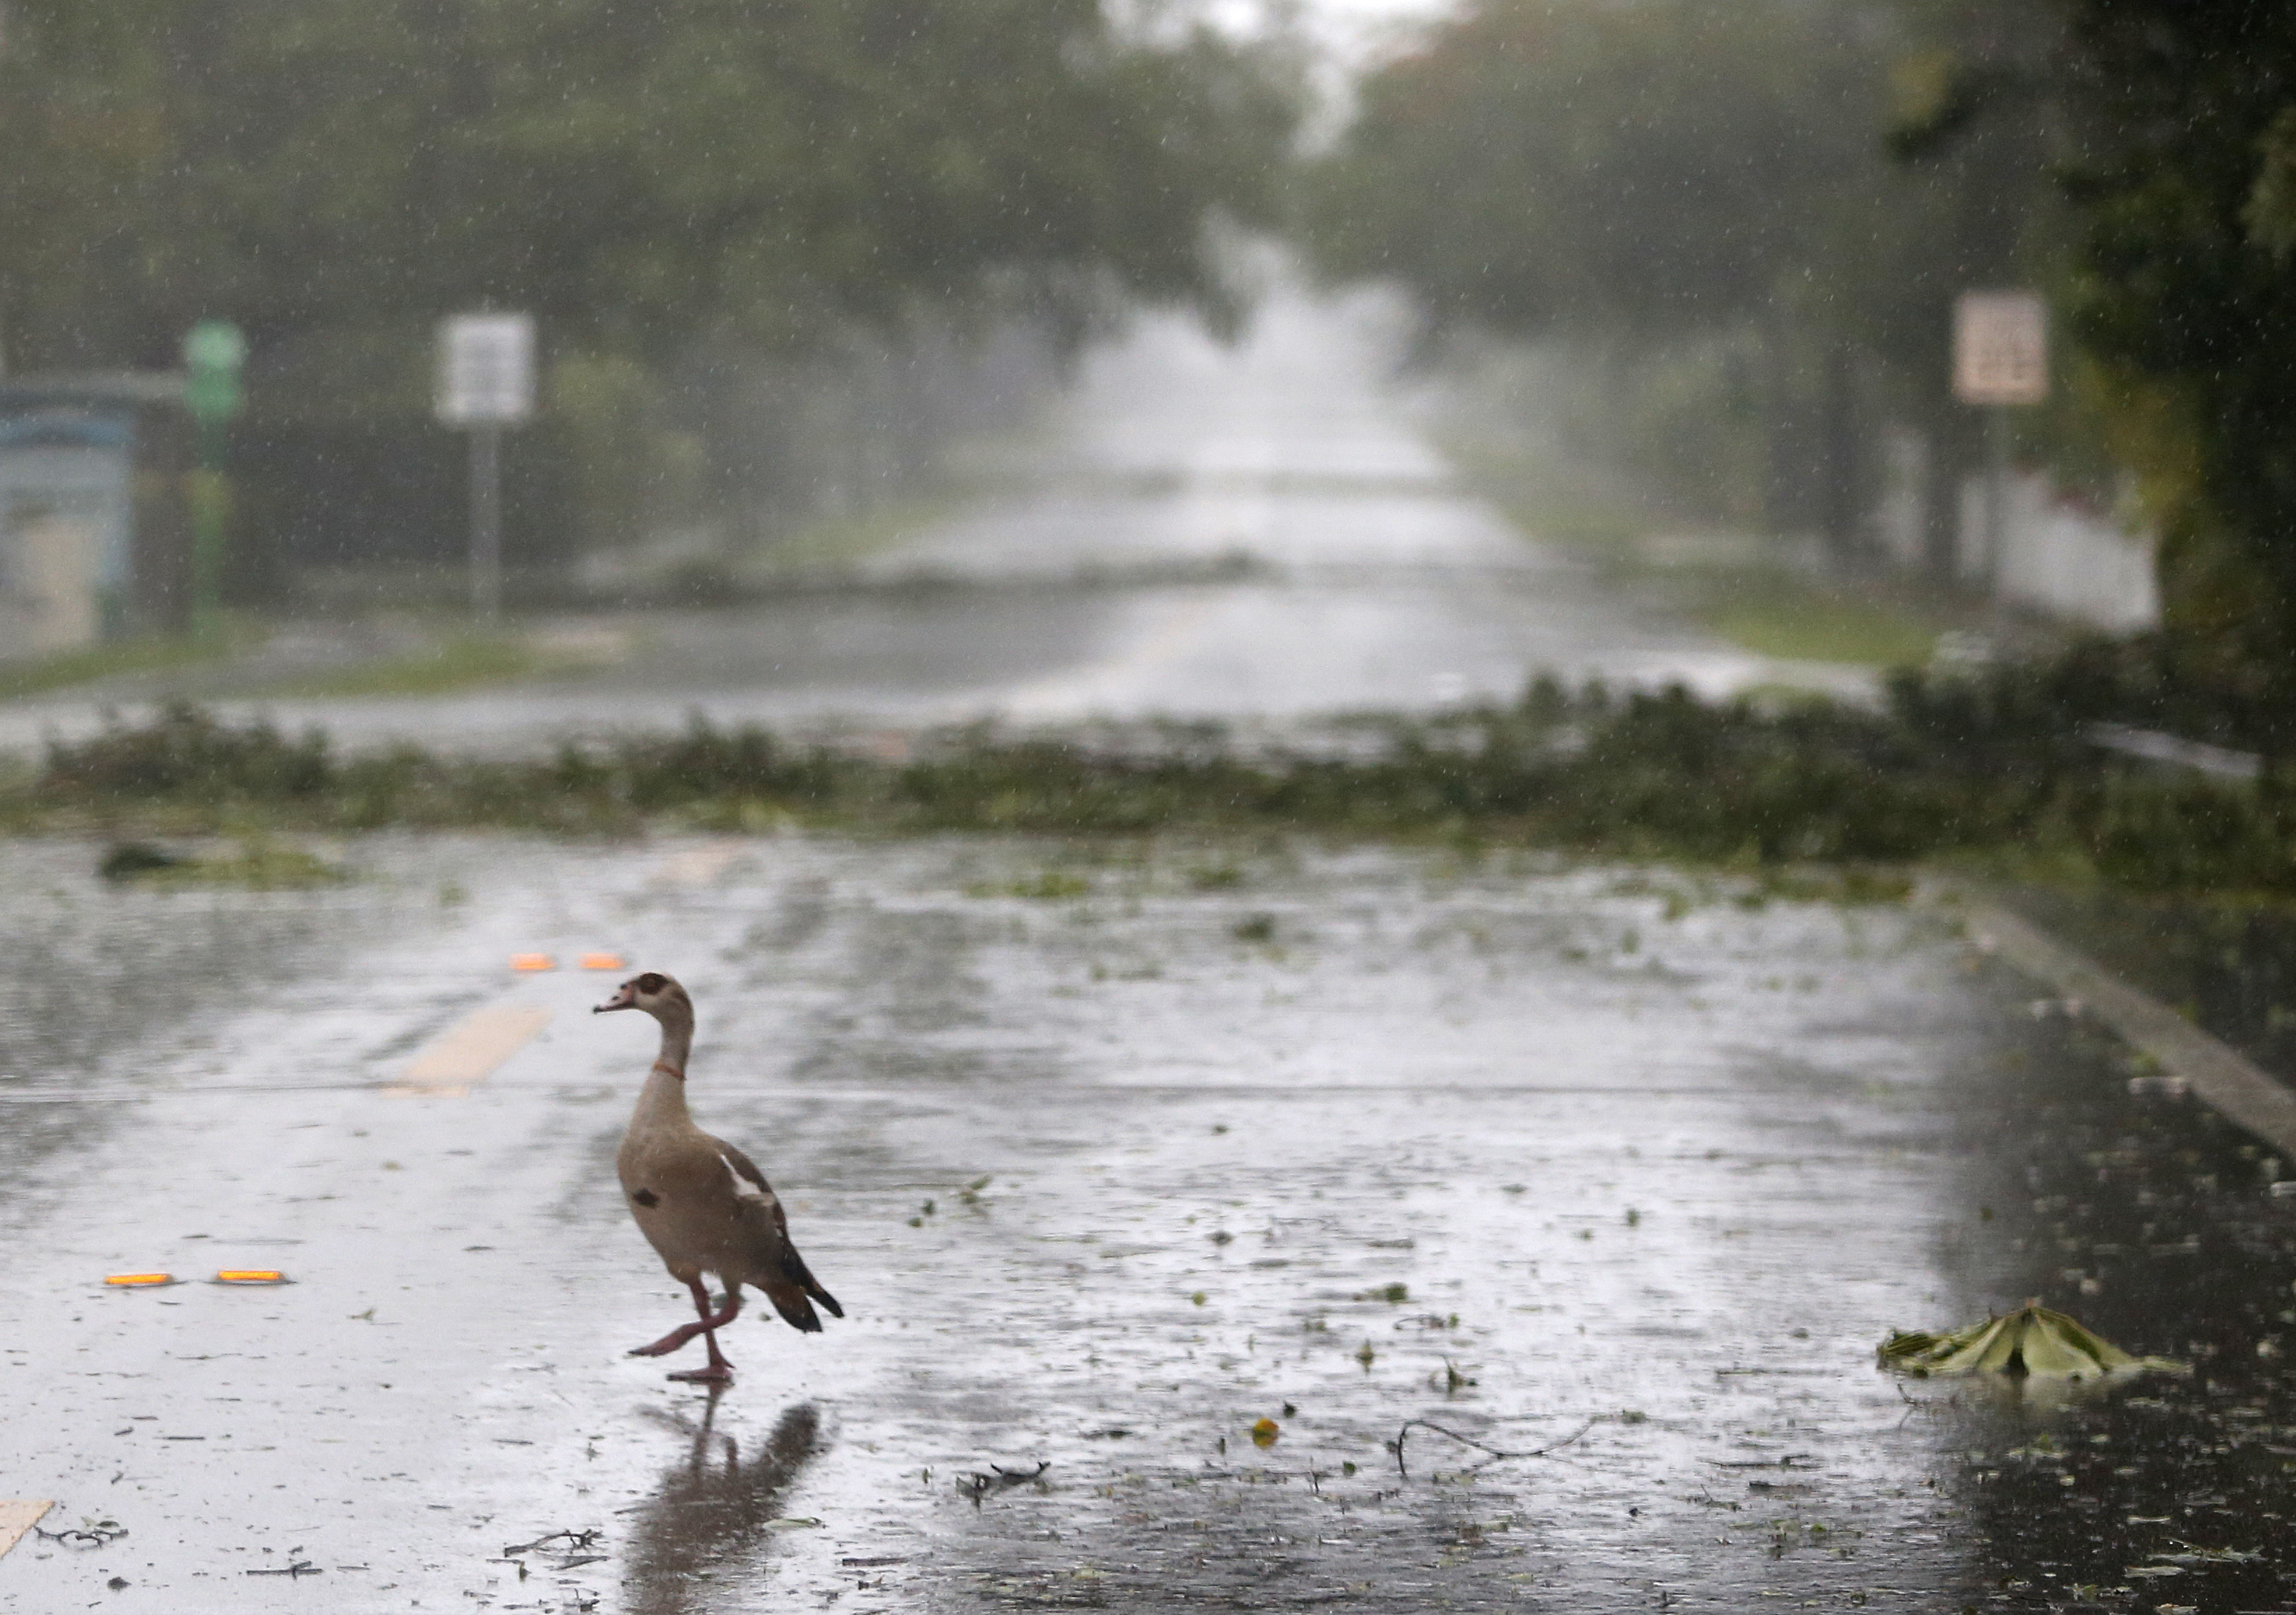 "<div class=""meta image-caption""><div class=""origin-logo origin-image none""><span>none</span></div><span class=""caption-text"">An Egyptian Goose stands in the middle of a debris-strewn road as Hurricane Irma passes by, Sunday, Sept. 10, 2017, in Coral Gables, Fla. (Wilfredo Lee/AP Photo)</span></div>"